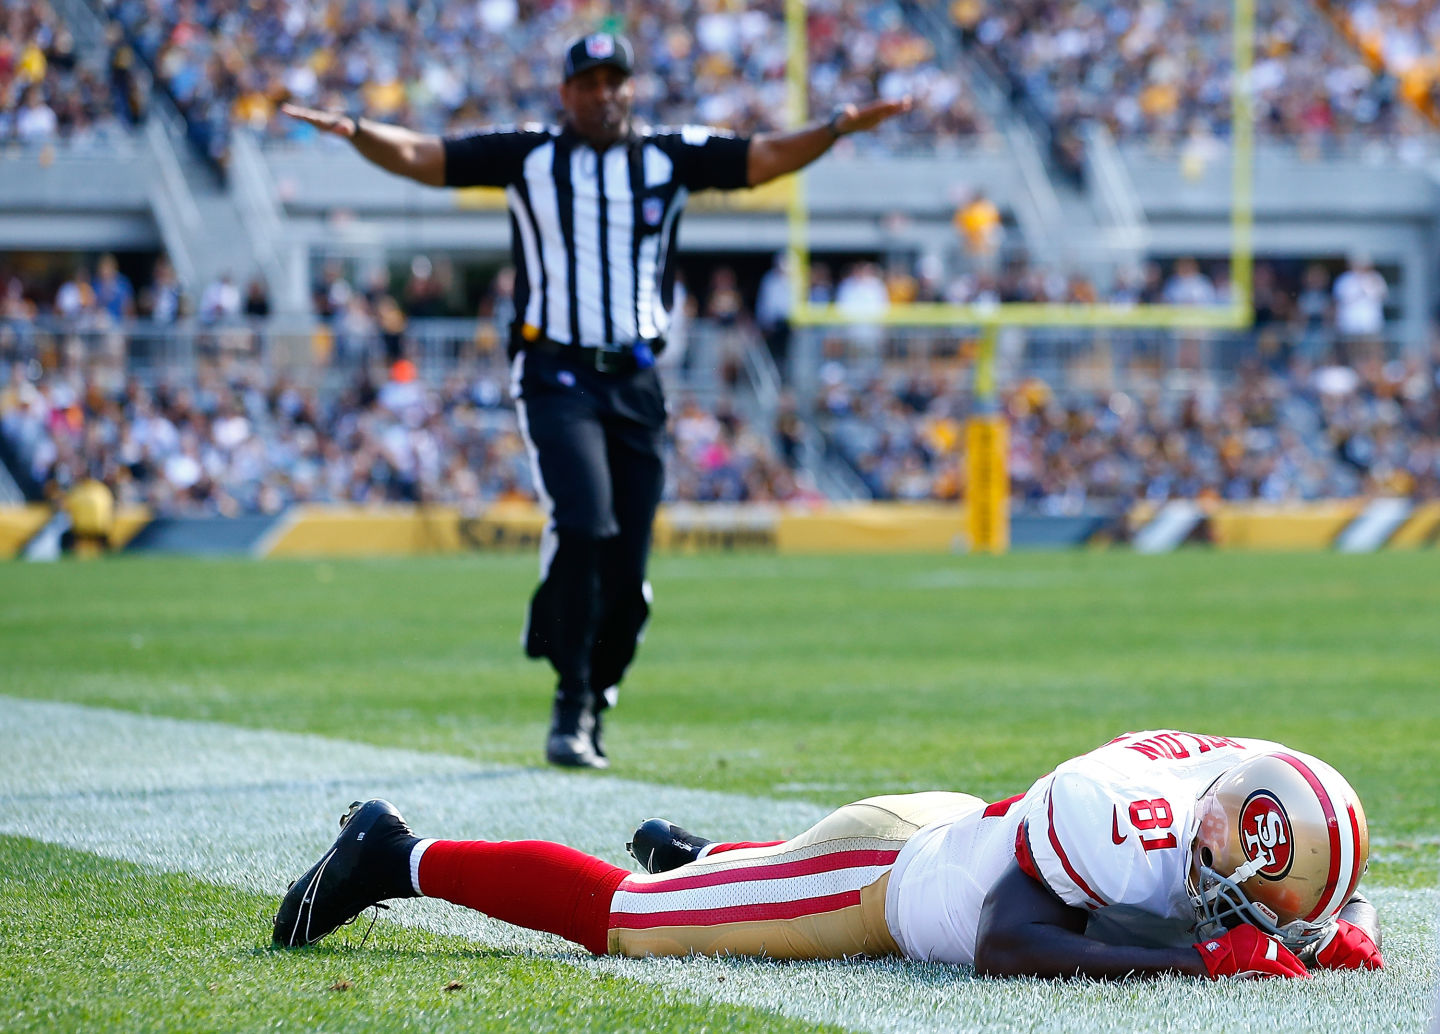 Anquan Boldin #81 of the San Francisco 49ers reacts following an incomplete pass in the third quarter against the Pittsburgh Steelers. (Jared Wickerham/Getty Images)